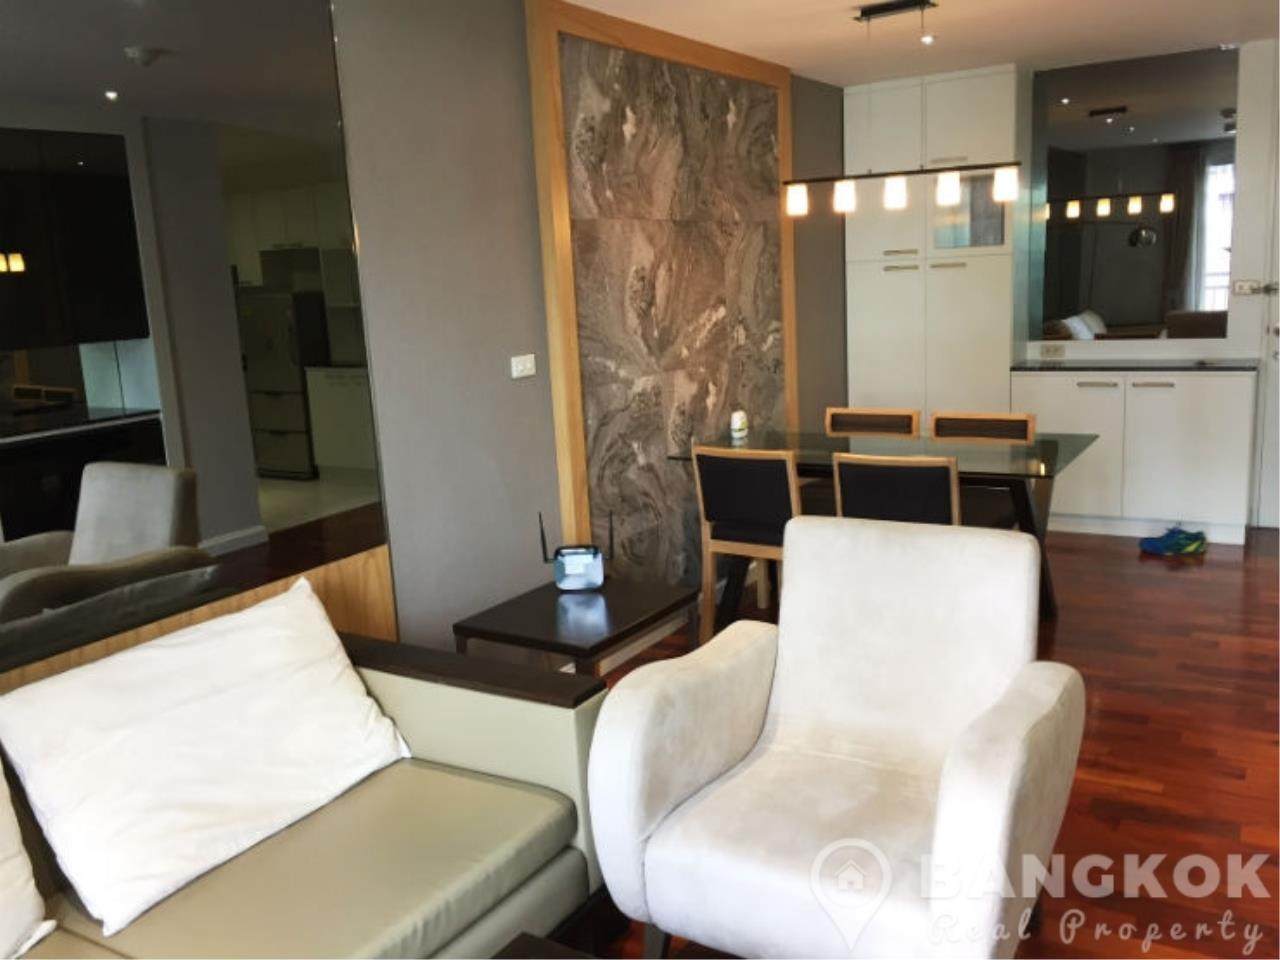 Bangkok Real Property Agency's 49 Plus | Spacious High Floor 1 Bed 1 Bath in Thonglor 2